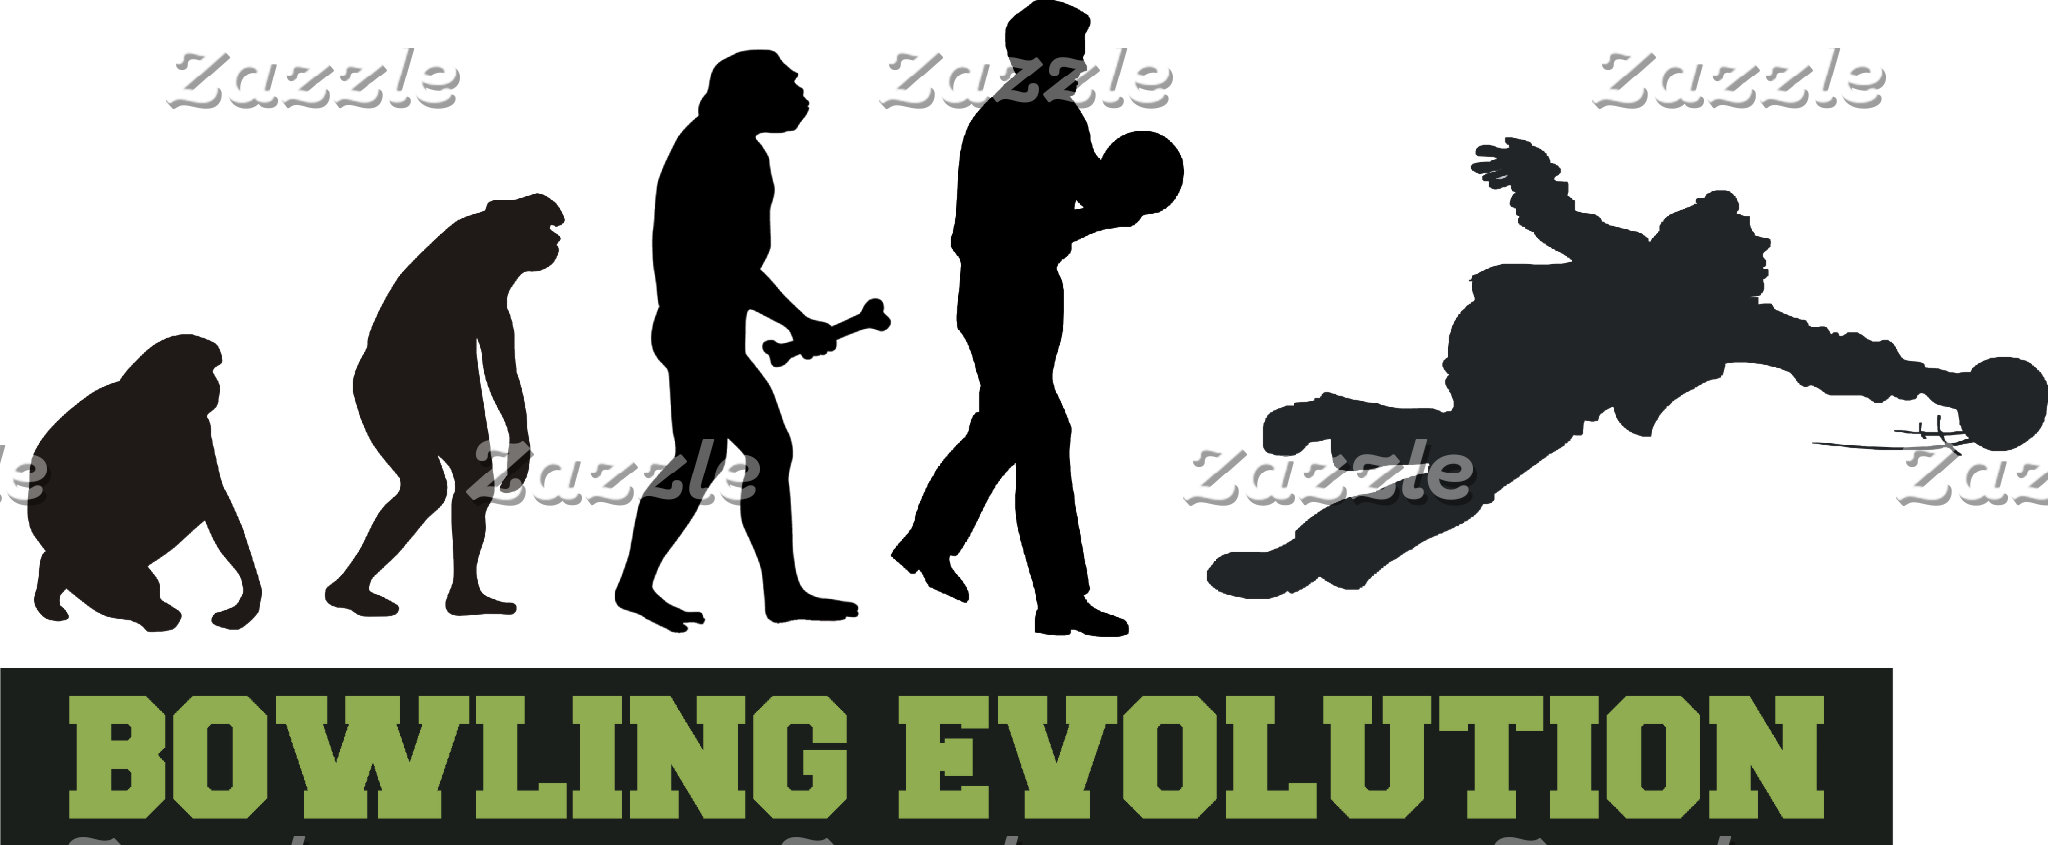 Bowling Evolution Bowler T-Shirt Gifts Cards